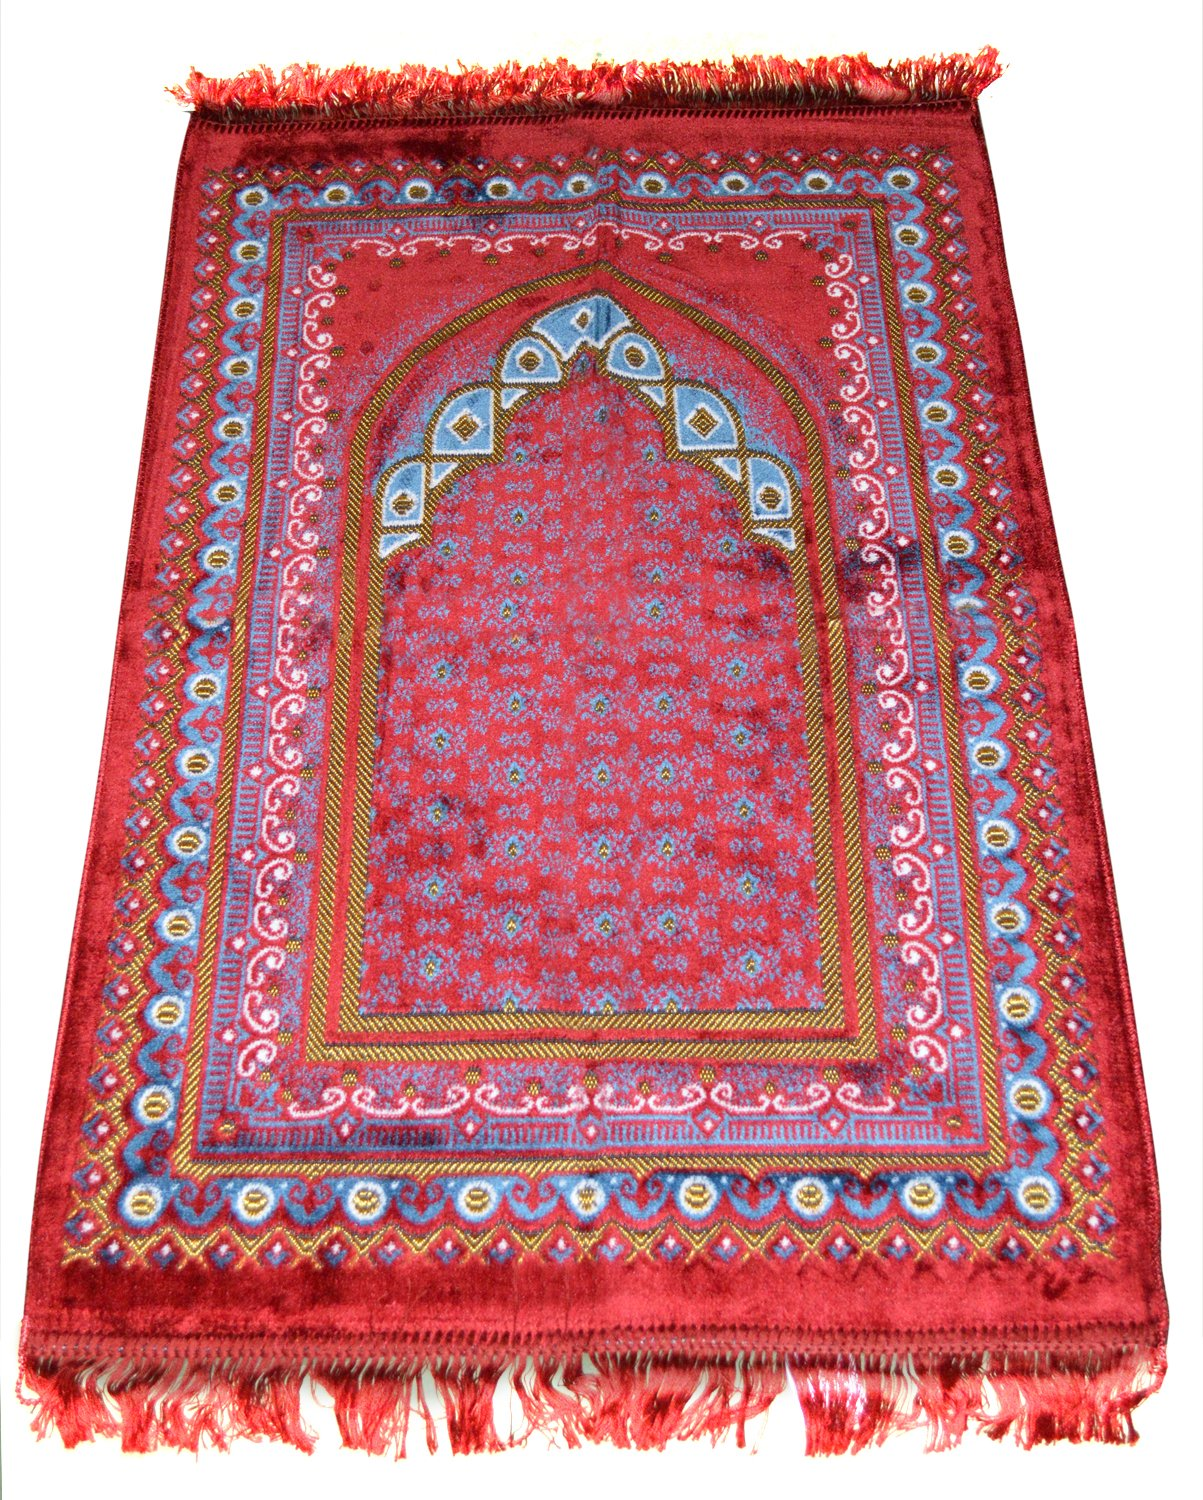 Prayer Rug Made in Turkey with Fine Soft Velvet Superior Quality